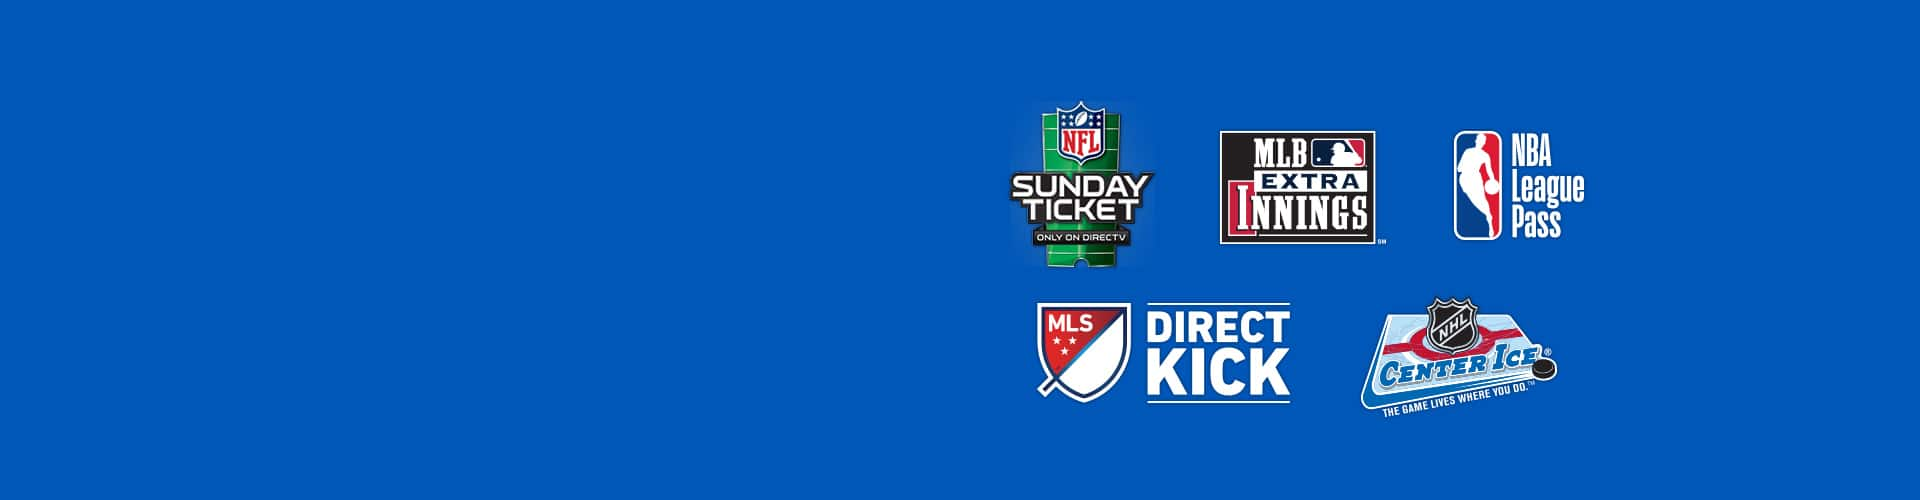 DIRECTV Sports Packages - NFL, MLB, NBA, NHL, MLS & More!